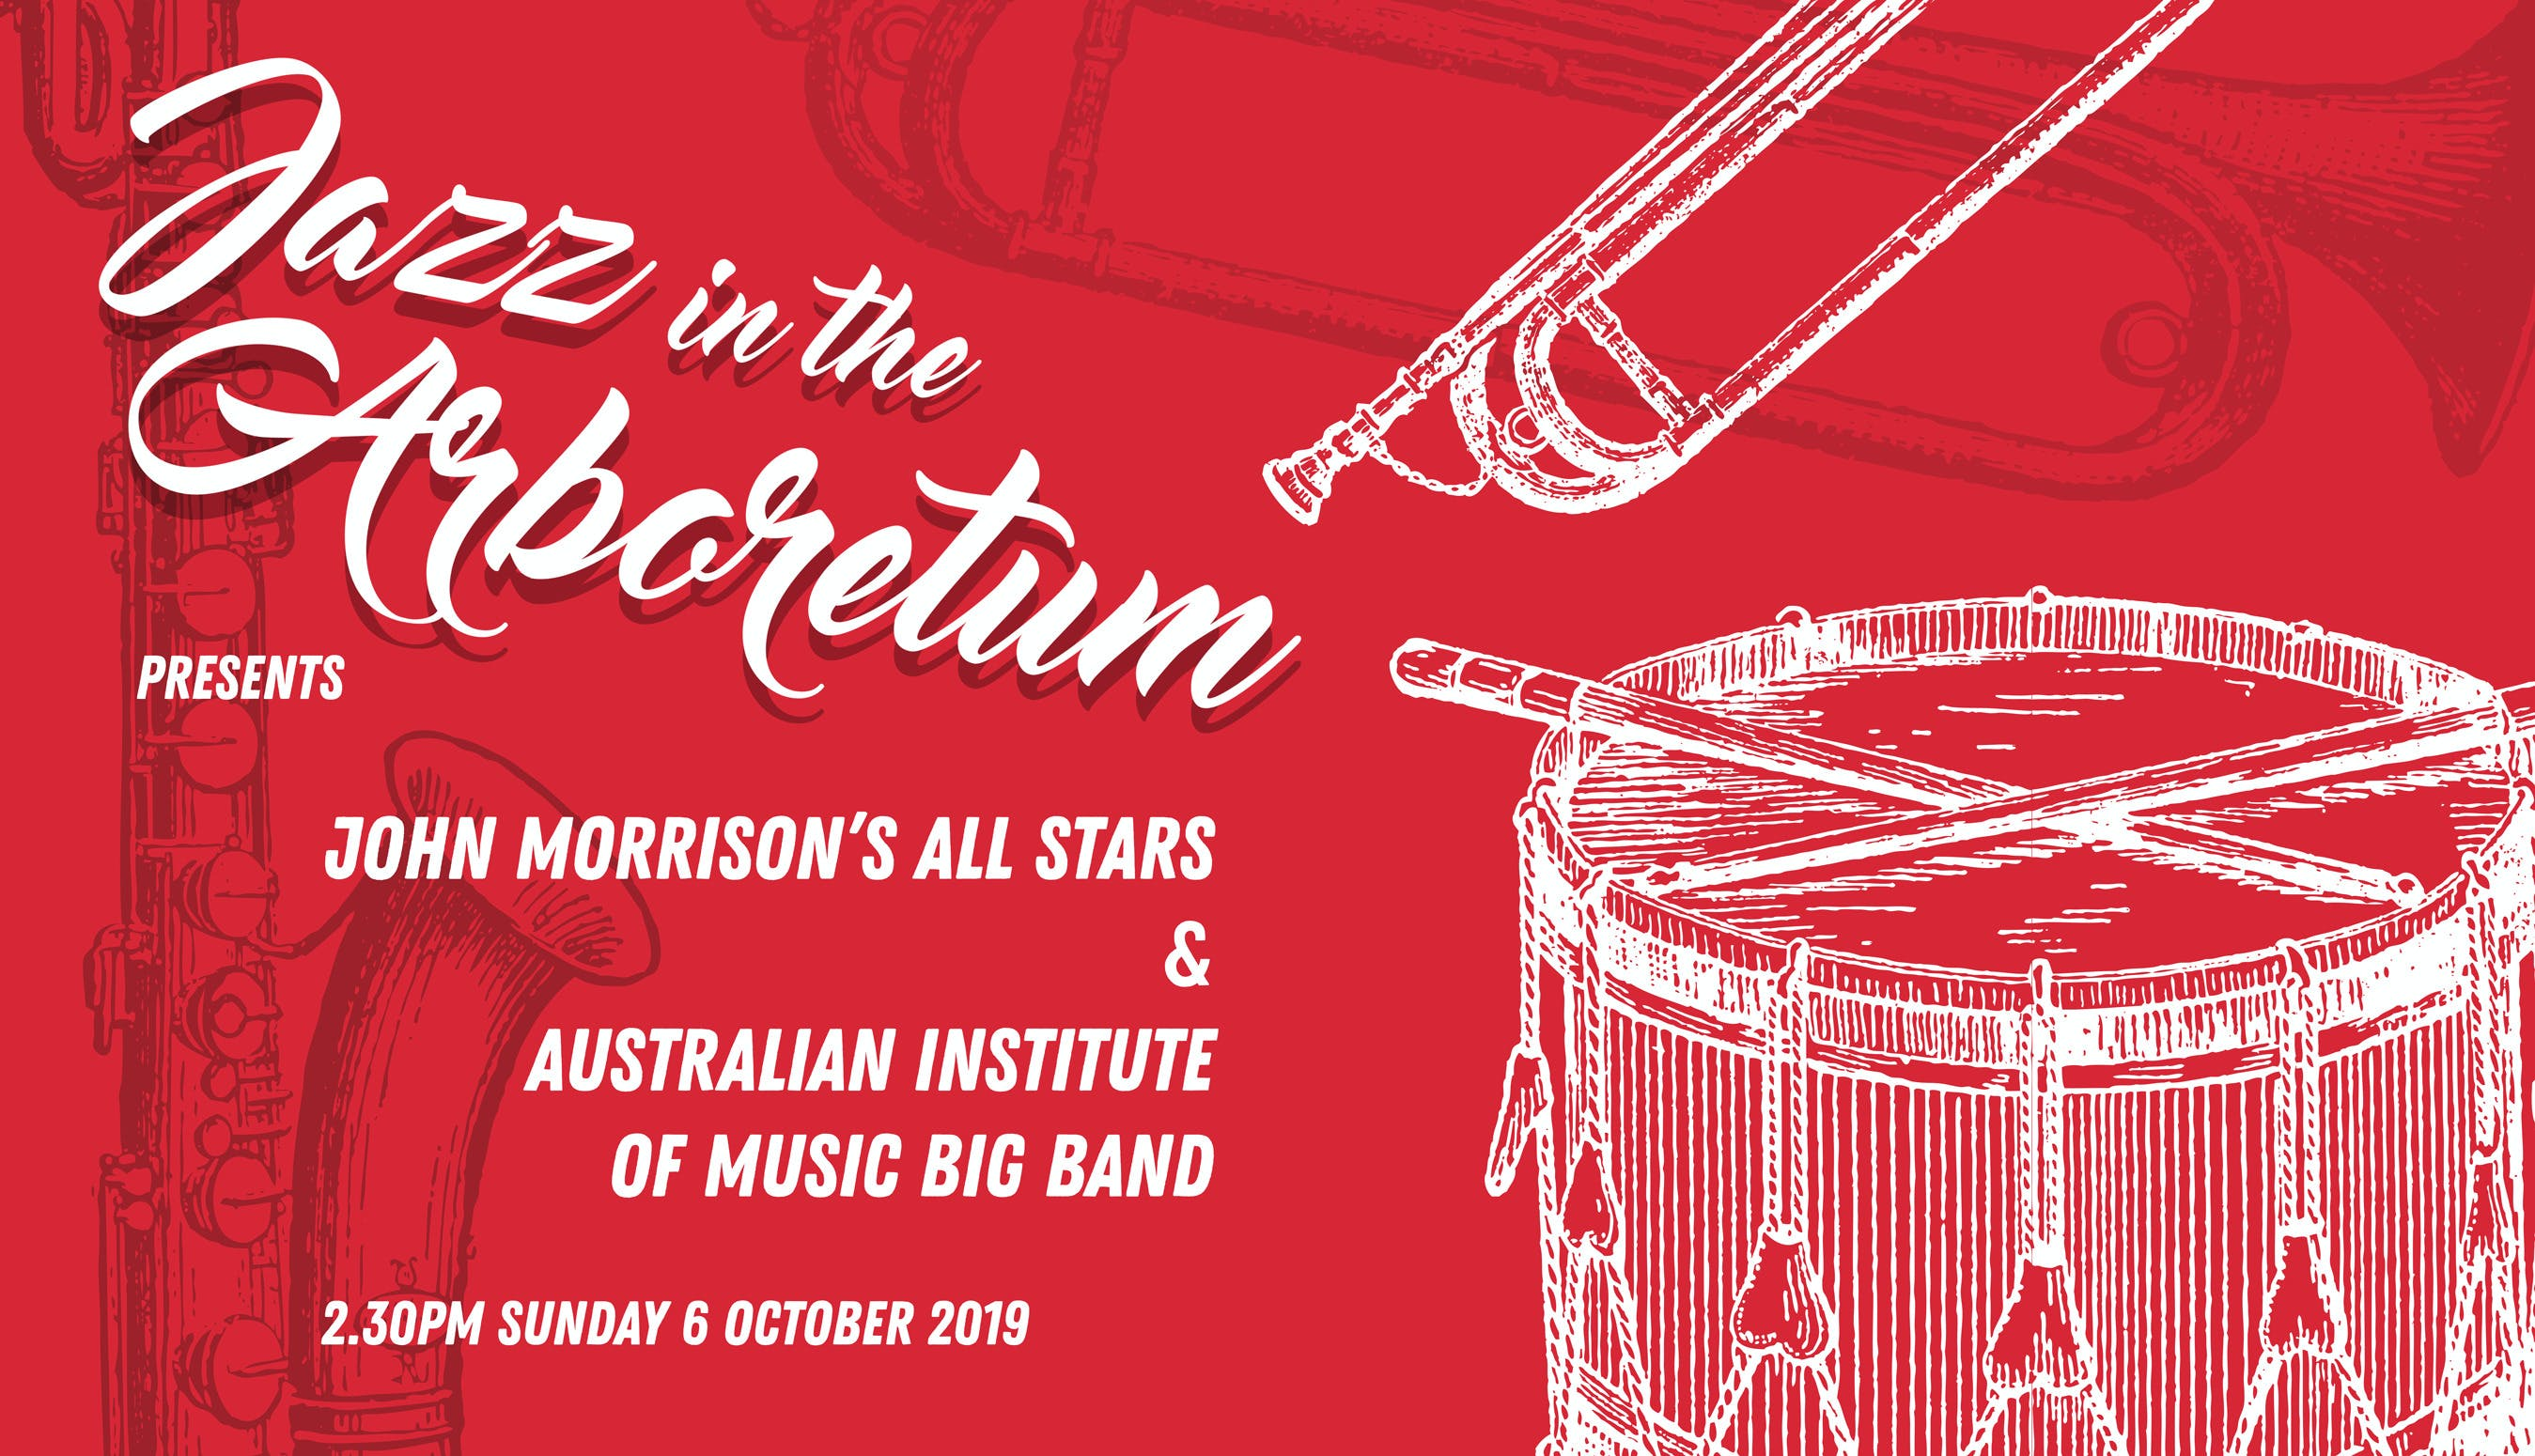 Jazz in the Arboretum - Palm Beach Accommodation